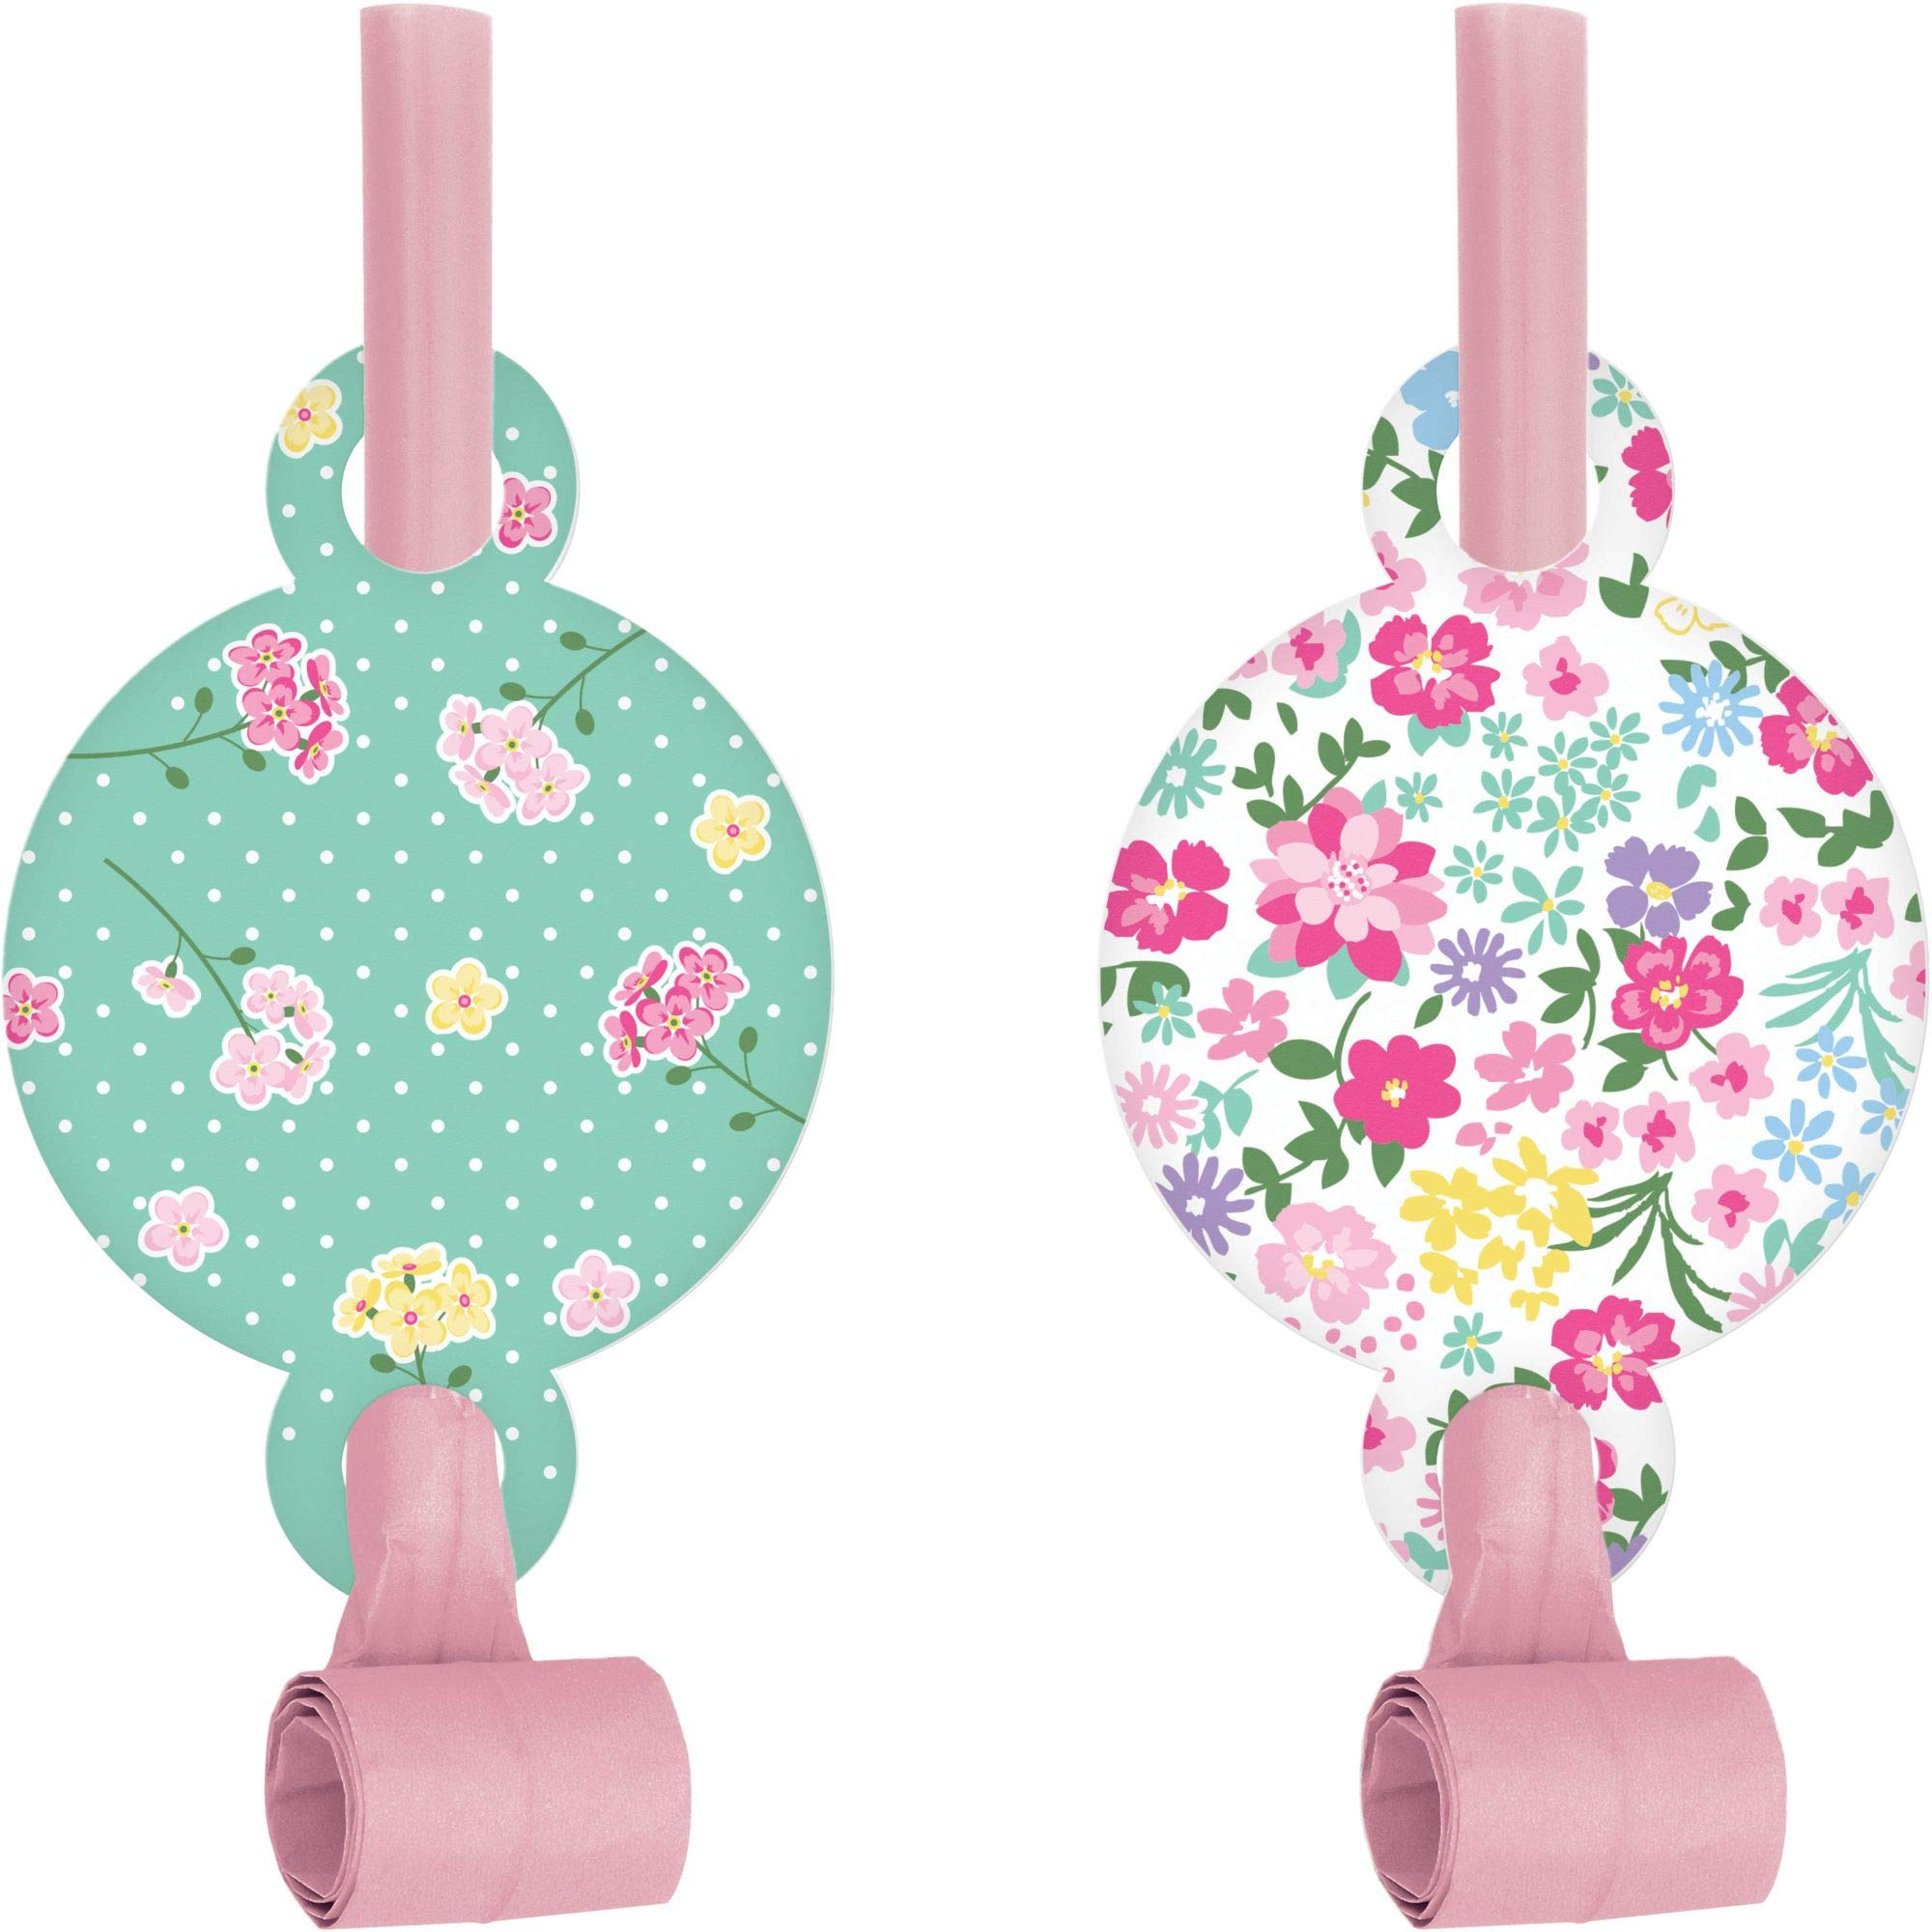 Club Pack of 48 Green and White Floral Tea Party Themed Blowout Party Noisemakers 5.25'' by Party Central